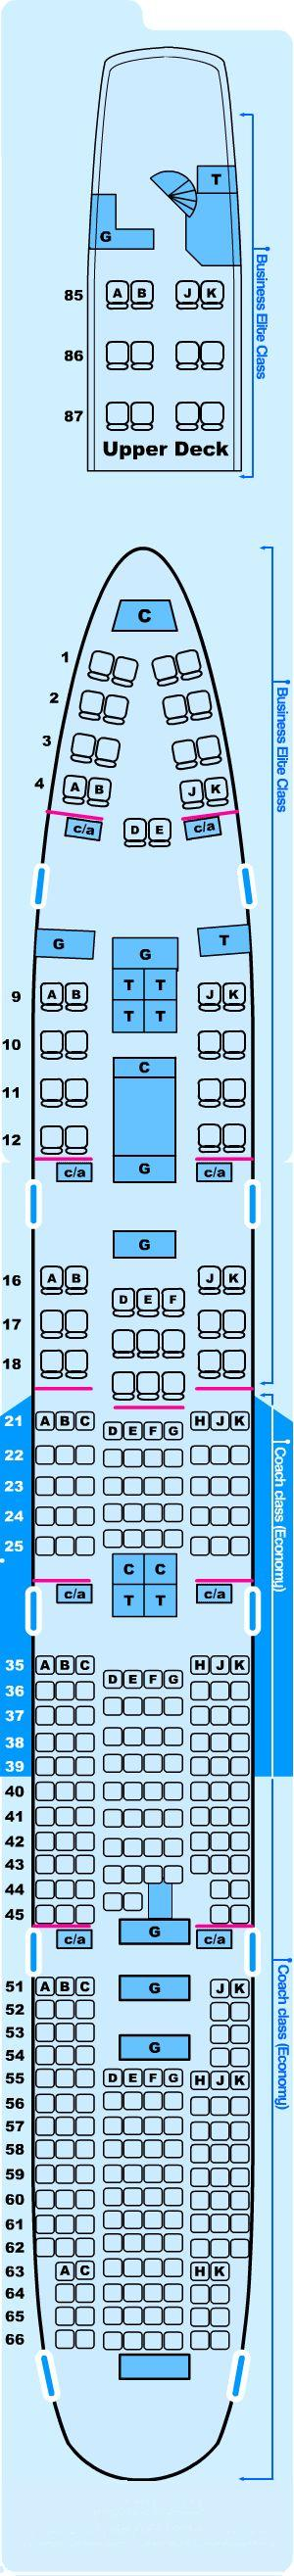 Seat map for Northwest Airlines Boeing B747 200 Z